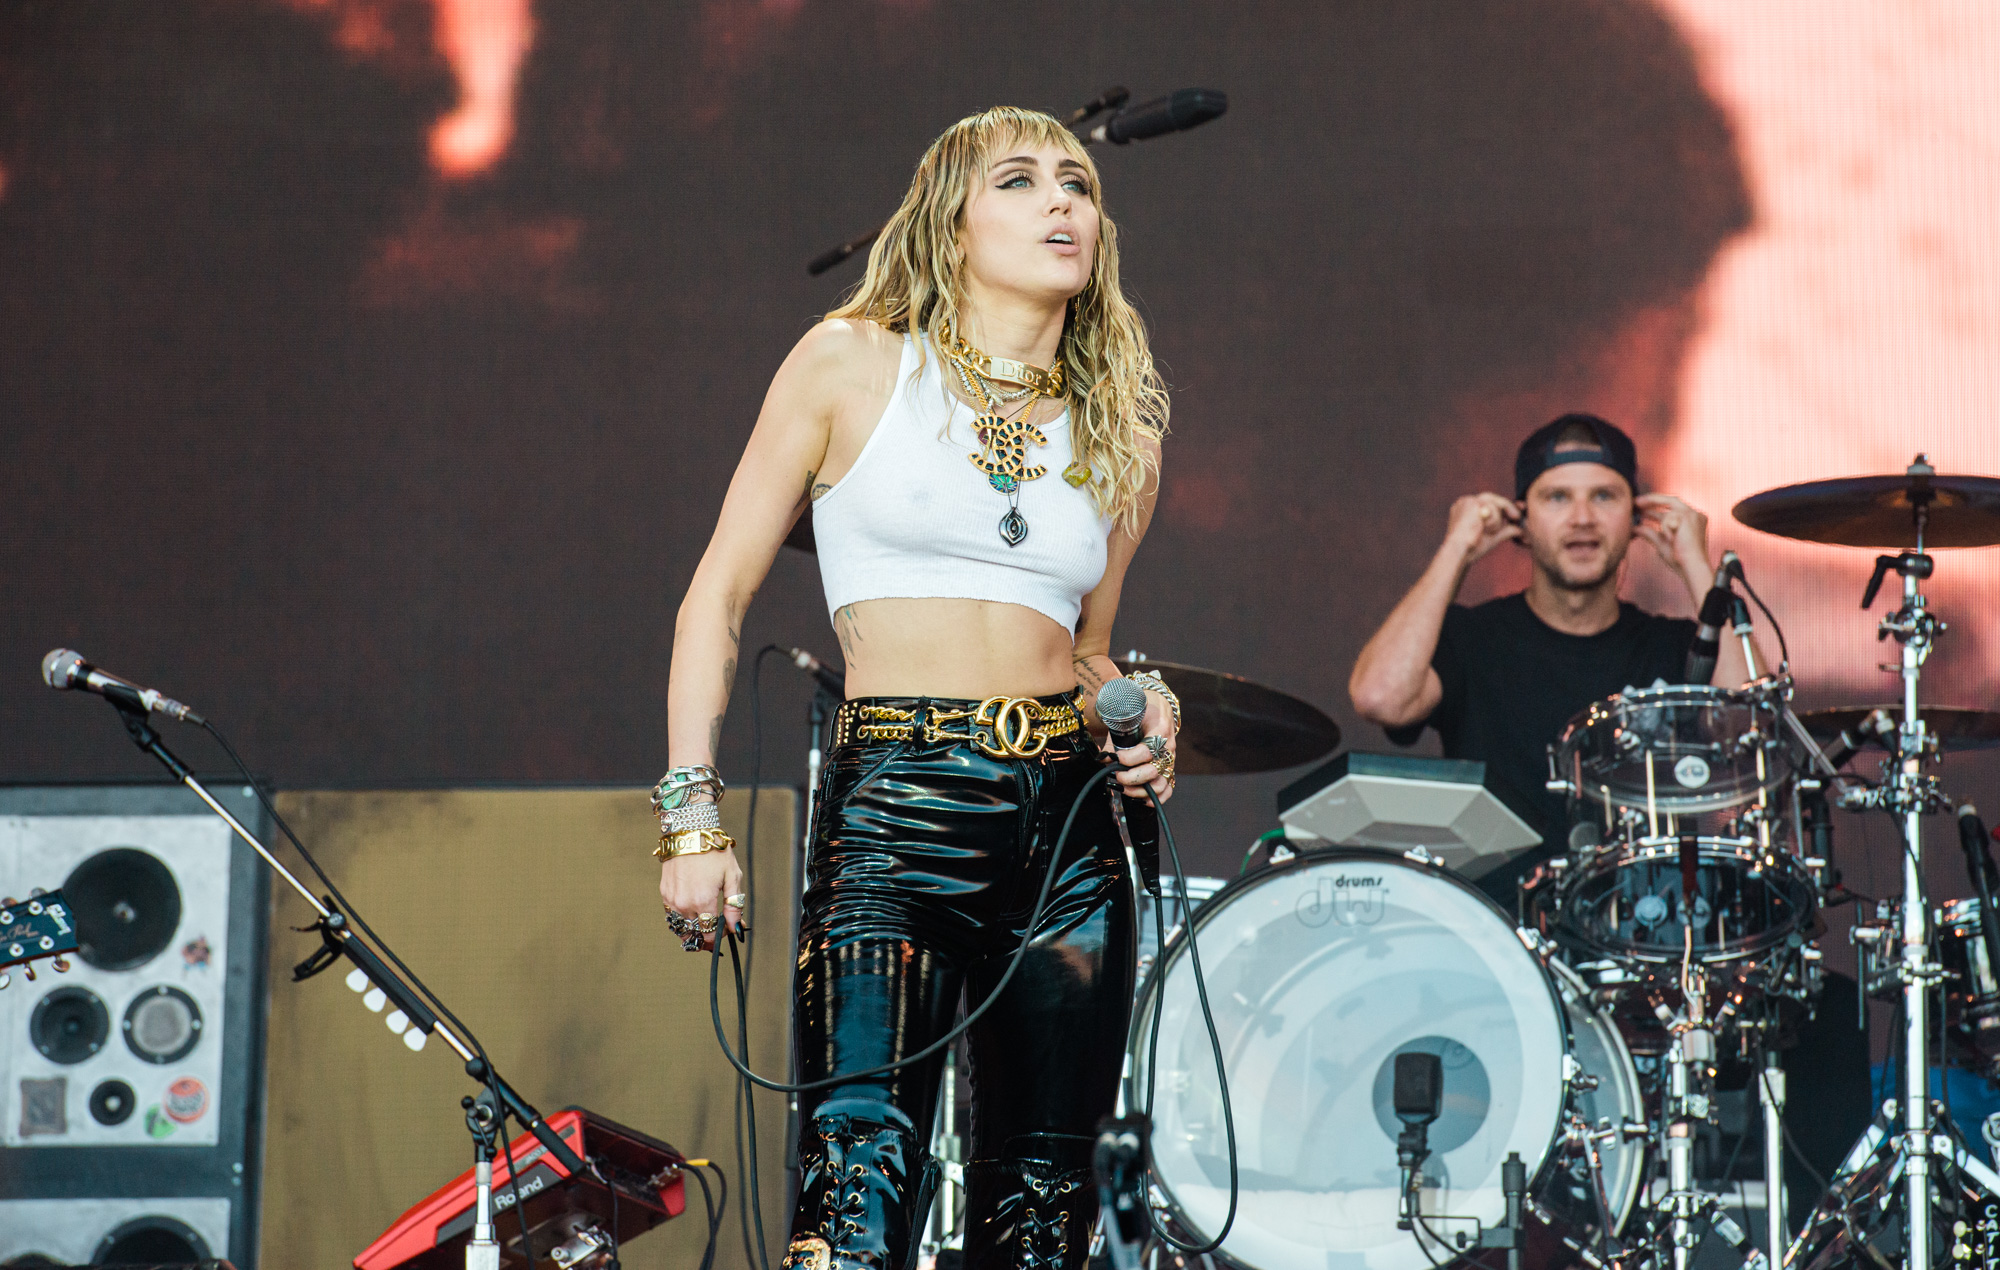 Miley Cyrus Reinvents Herself As A Rockstar At Glastonbury